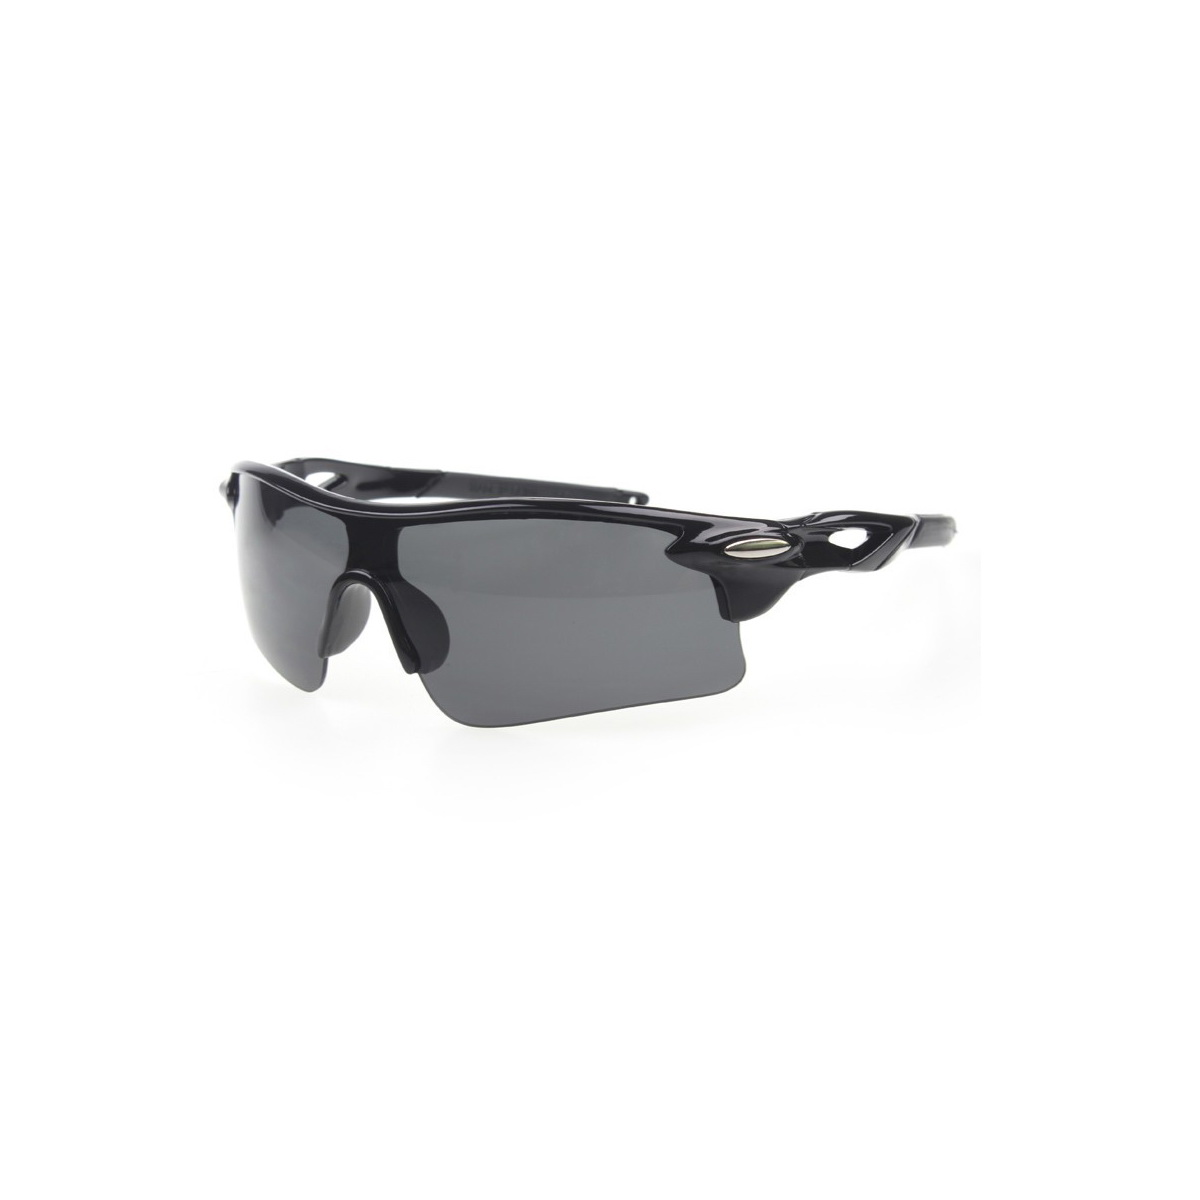 Sigma Black Sports Wrap around Sunglasses